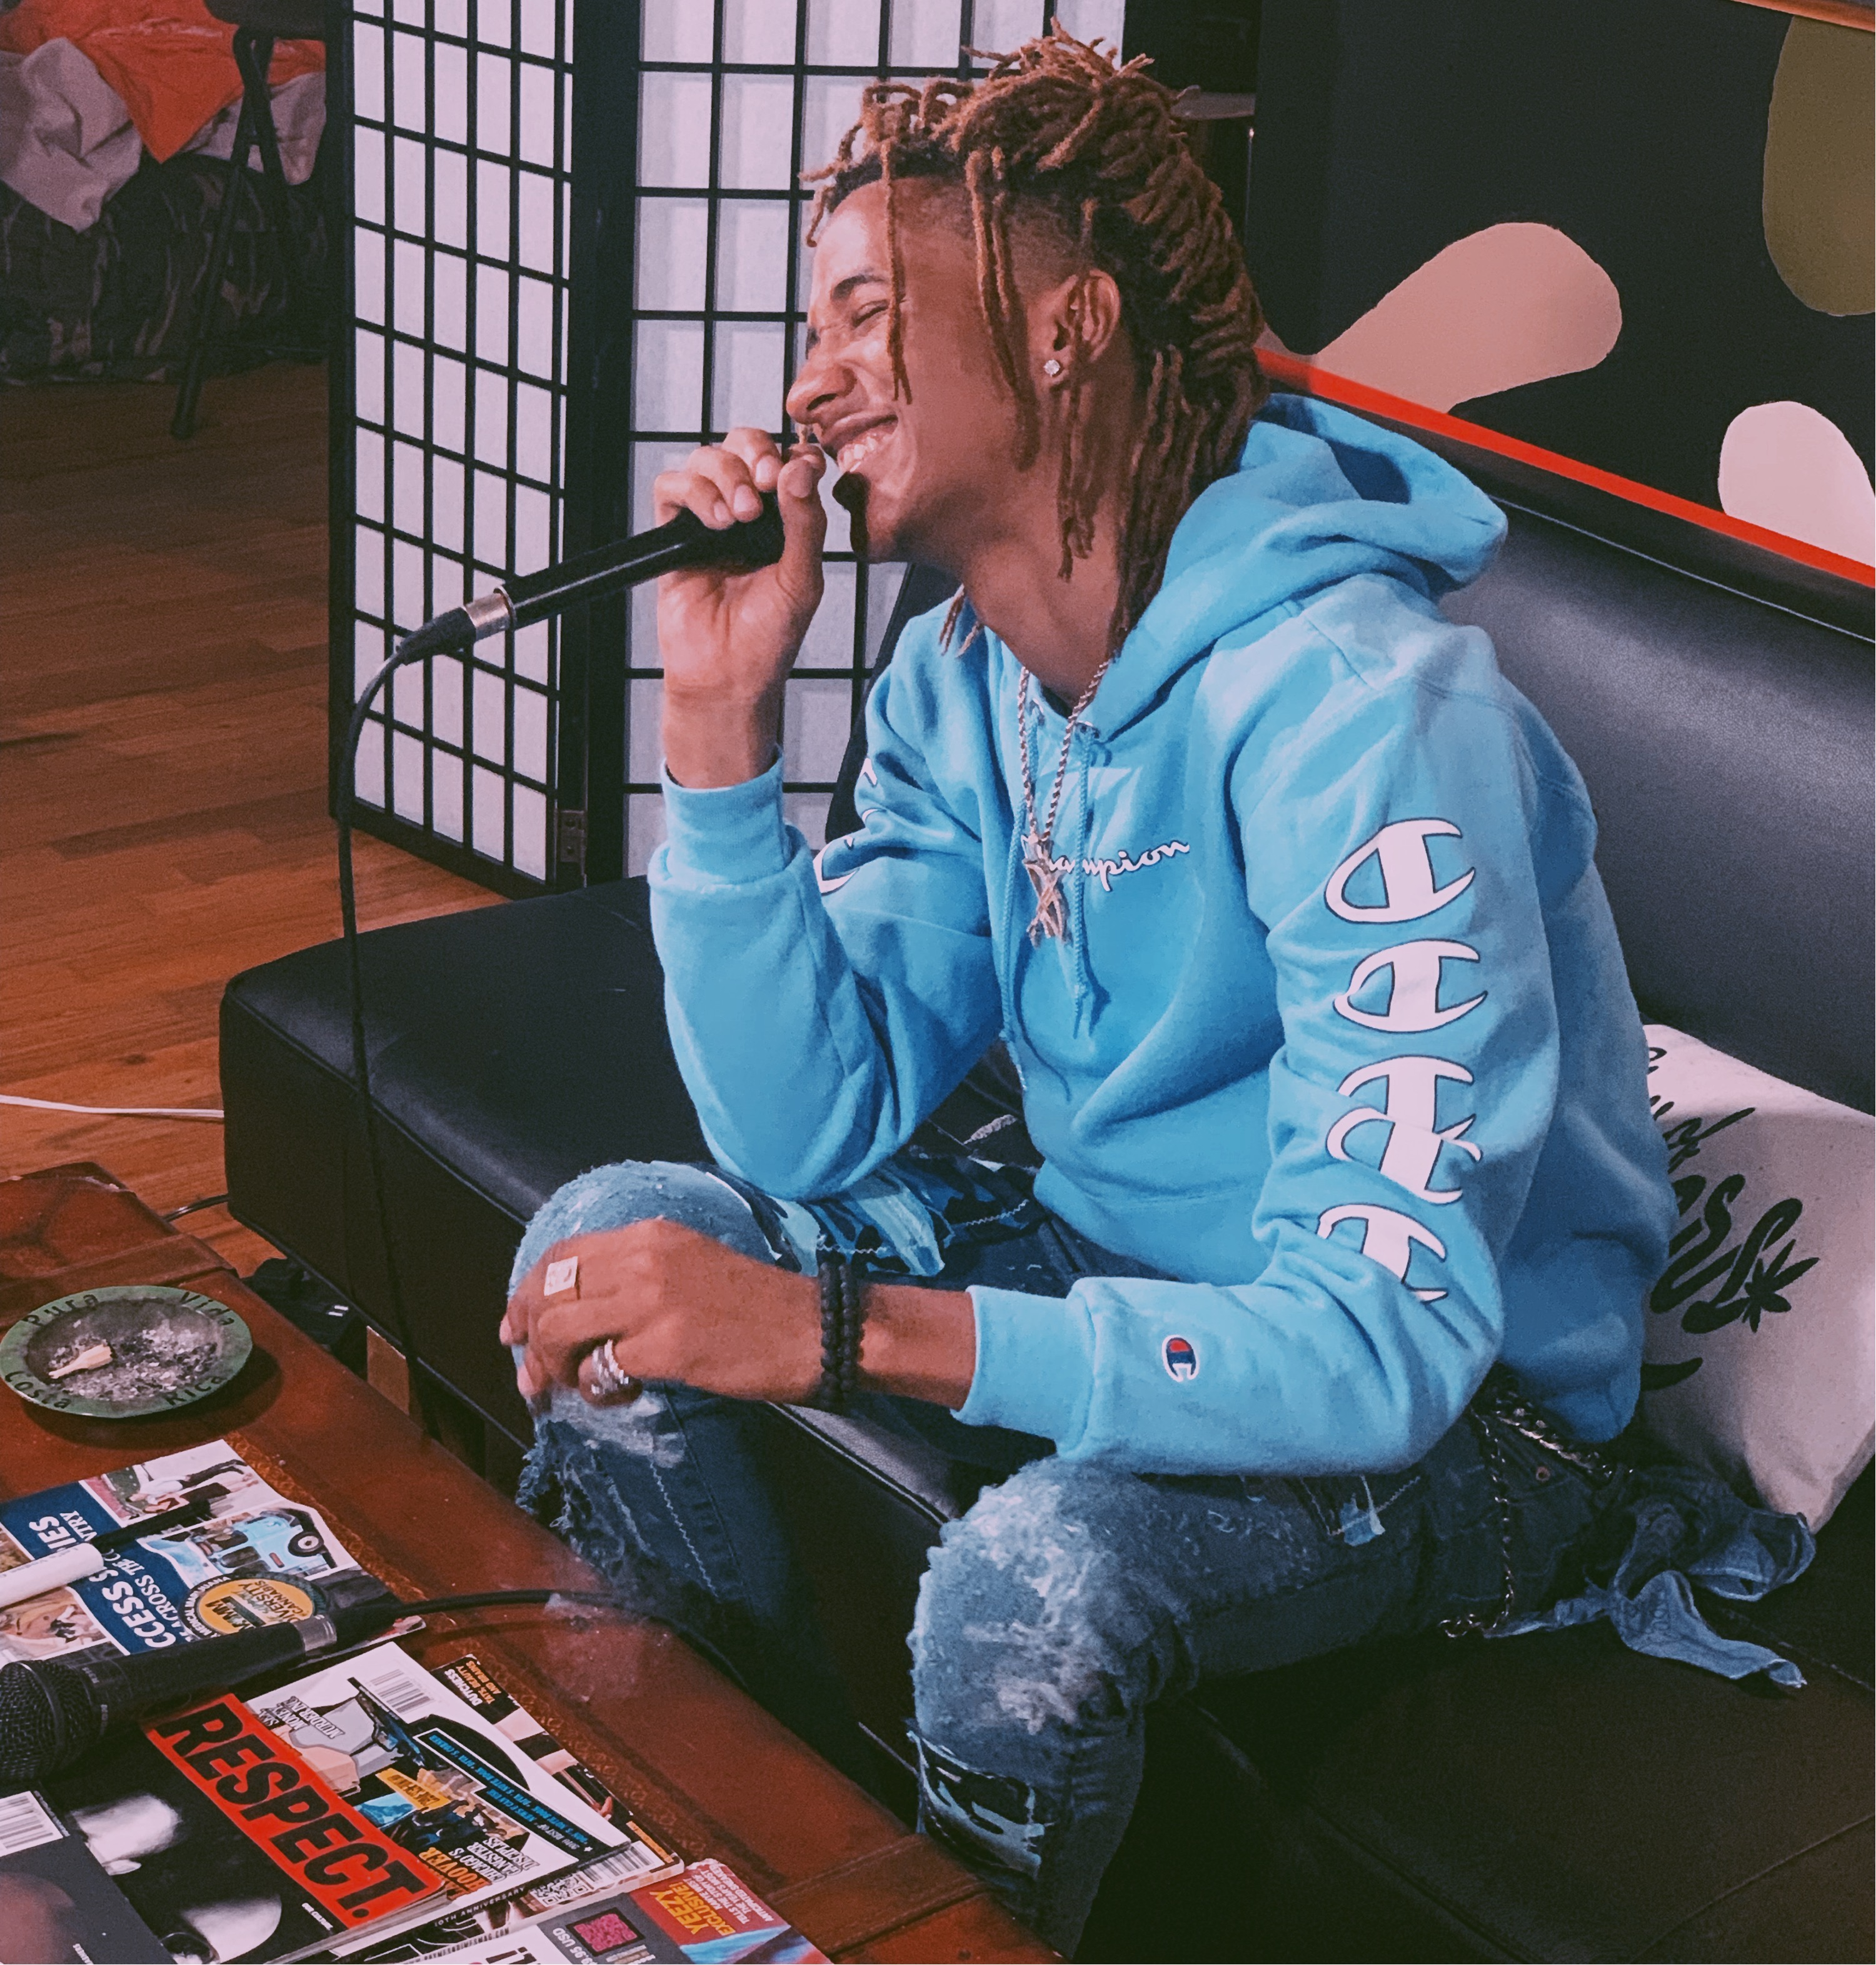 #BEFORETHEFAME | ROBNHOOD TRA Talks About The Meaning Behind His Name, Growing Up with 17 siblings, His New Video 'No Cap' & MORE